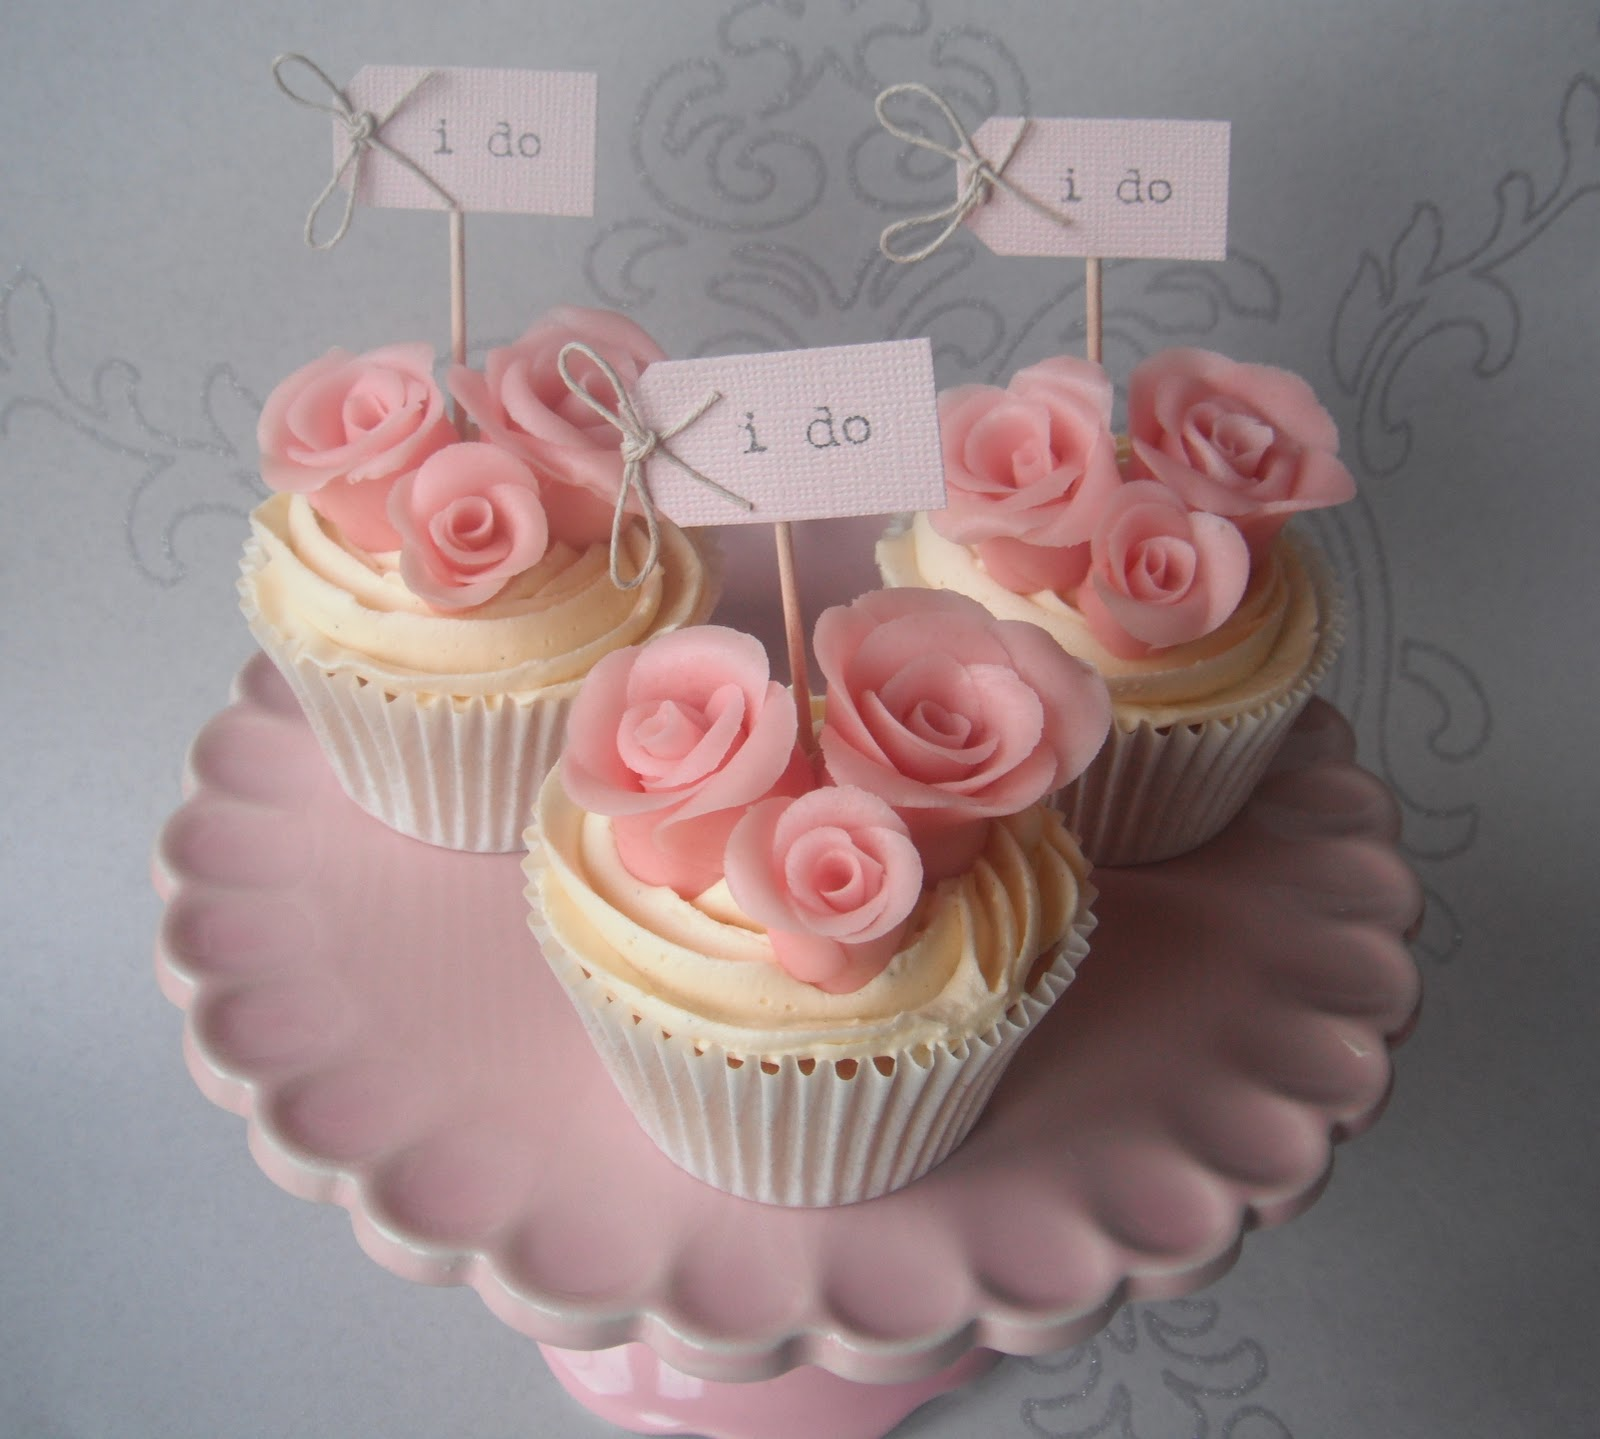 I do\' Wedding Cupcakes